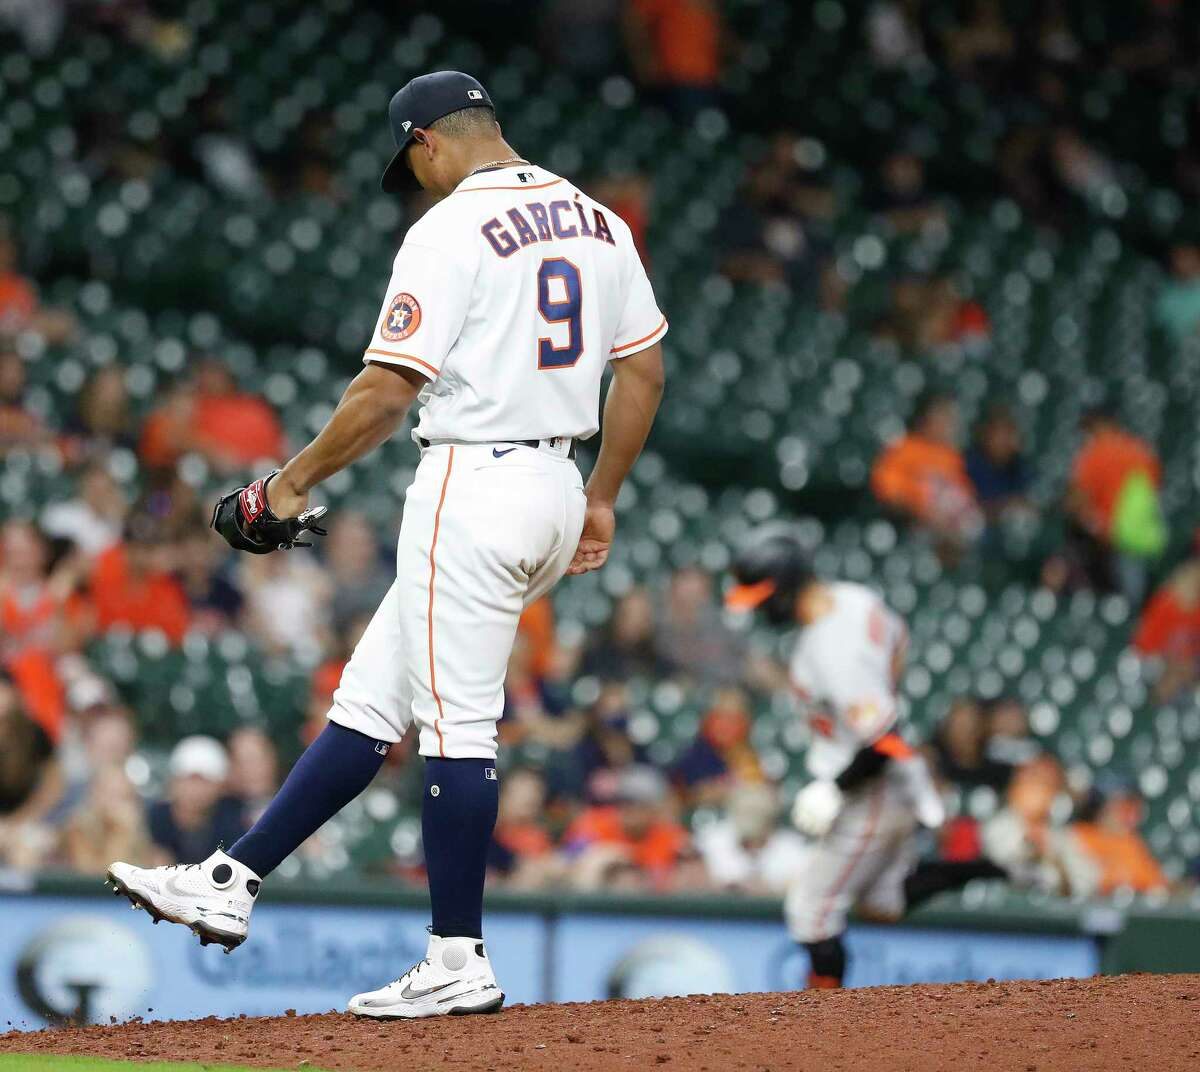 Houston Astros infielder Robel Garcia (9) reacts after giving up a home run to Baltimore Orioles Ramon Urias (29), as he pitched during the ninth inning of an MLB baseball game at Minute Maid Park, Tuesday, June 29, 2021, in Houston.